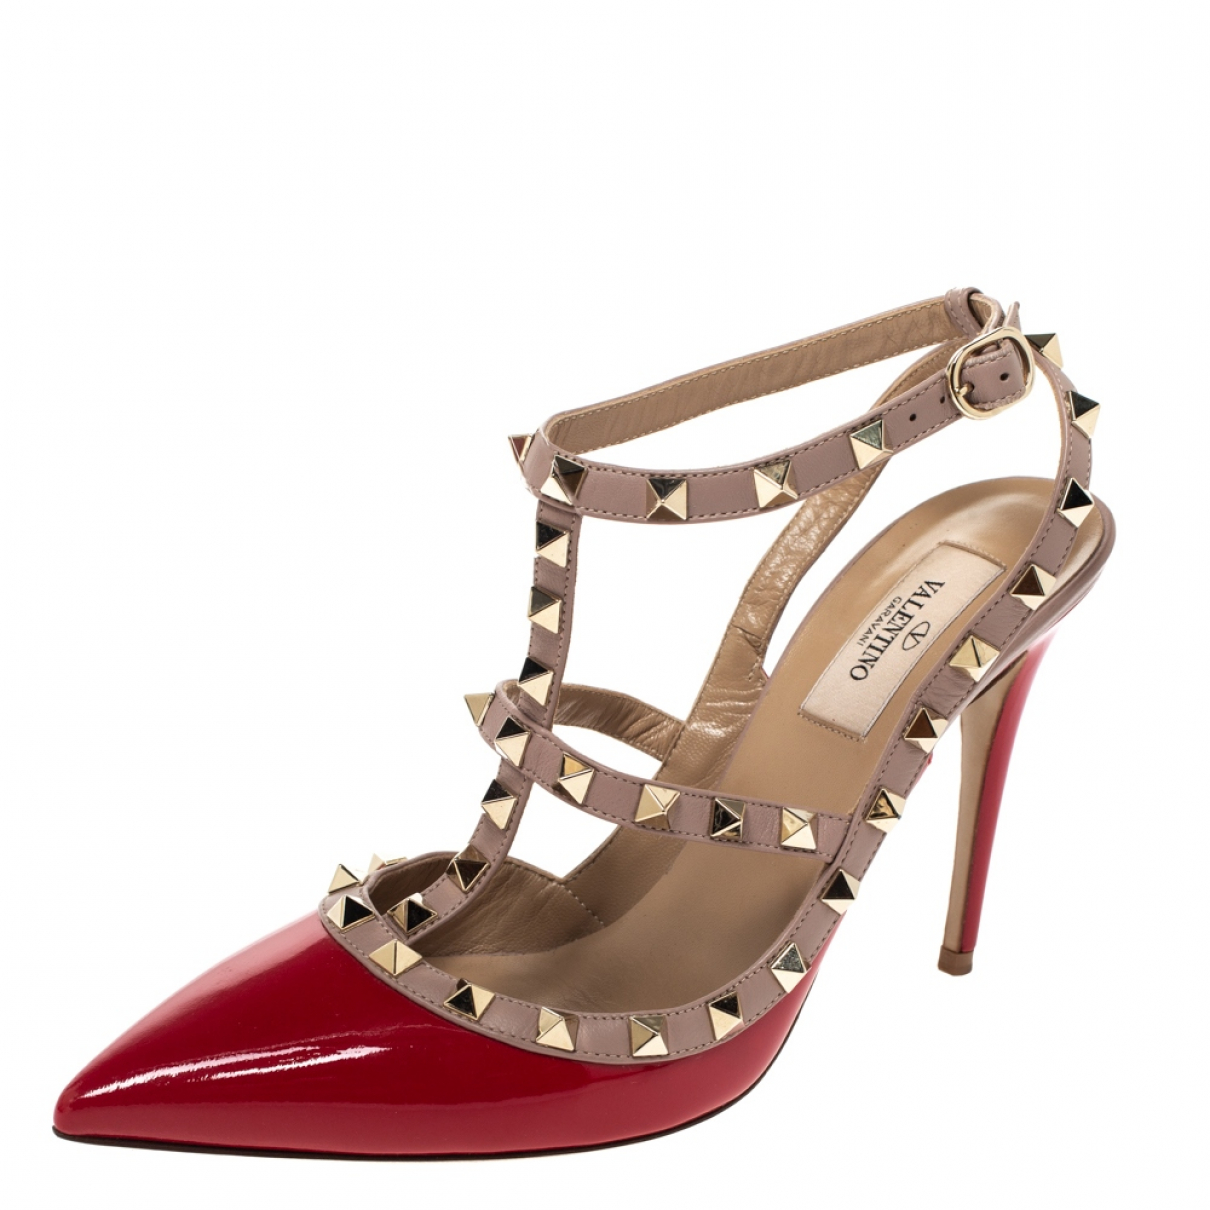 Autre Marque \N Red Patent leather Sandals for Women 8.5 US